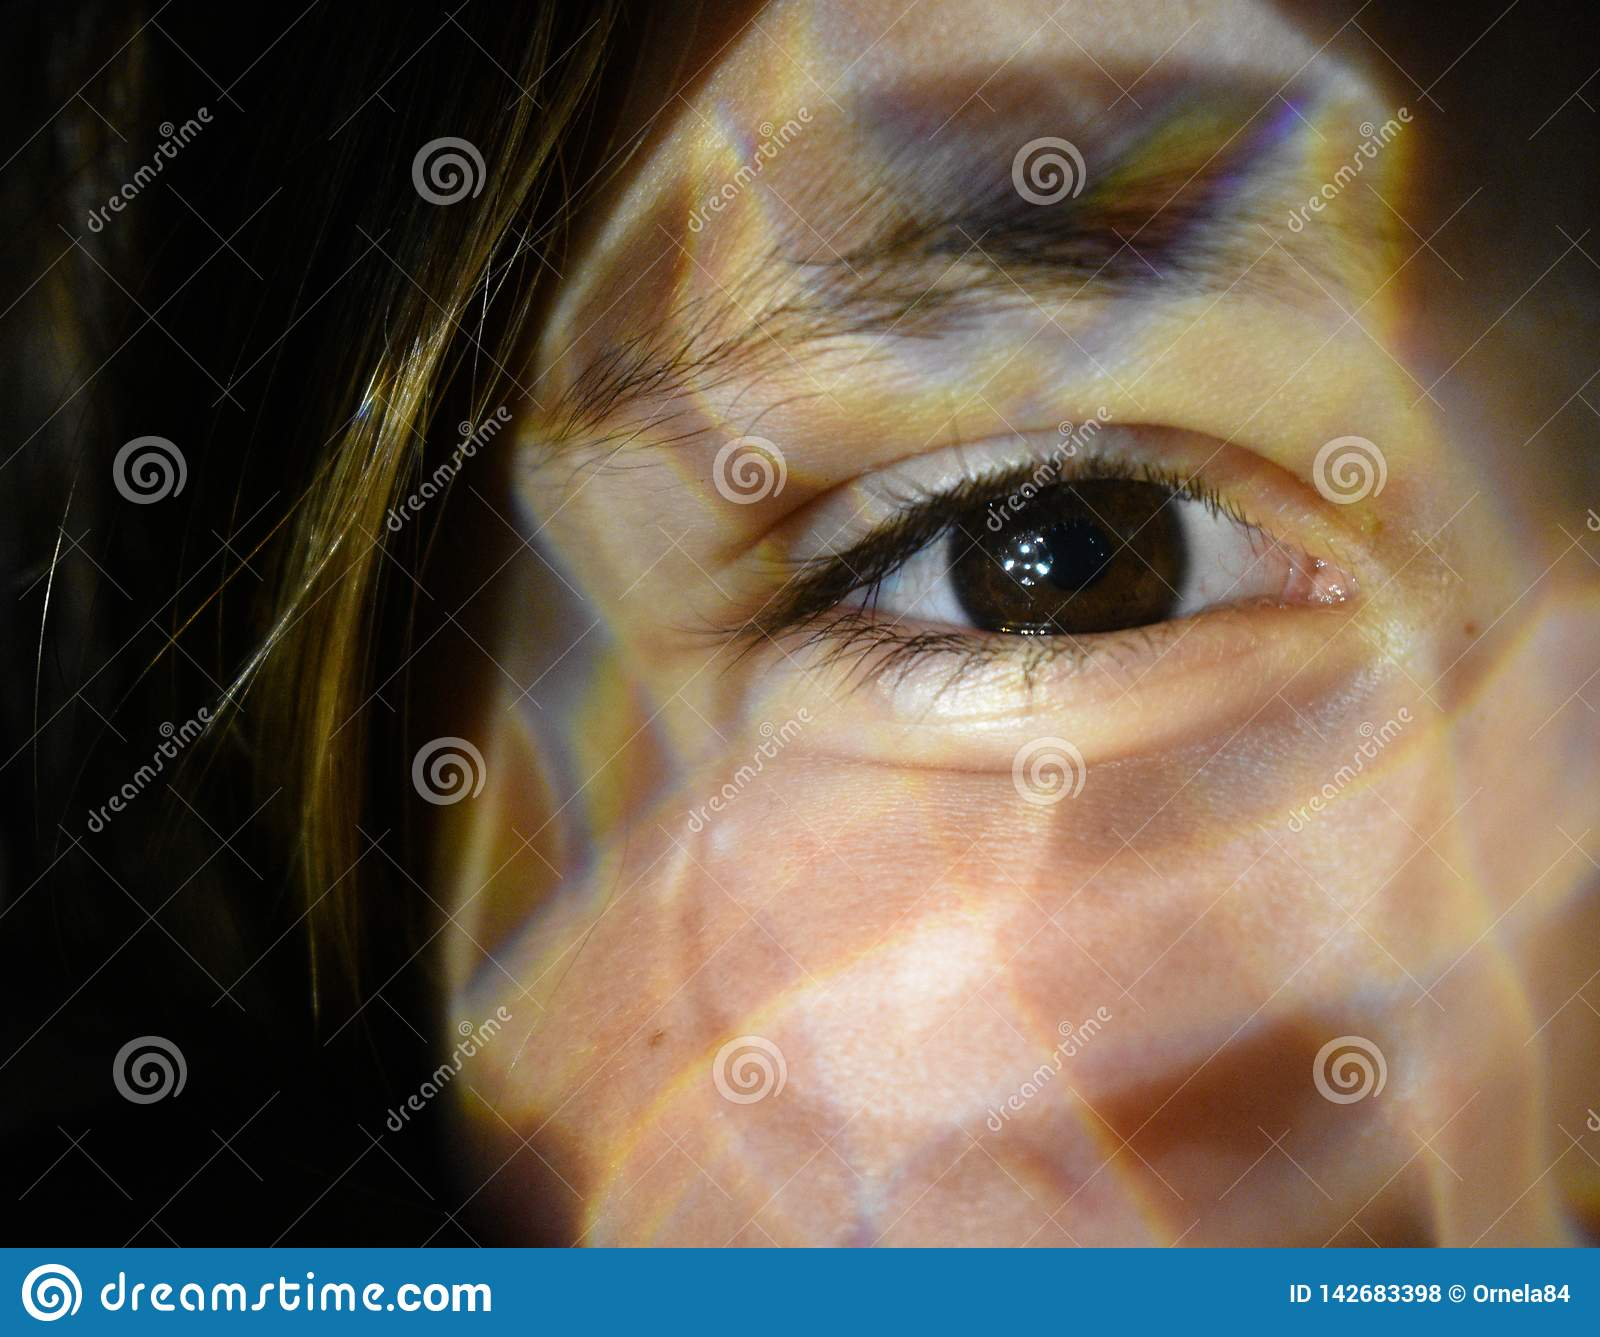 Closed up of a woman eye with light effect on her face